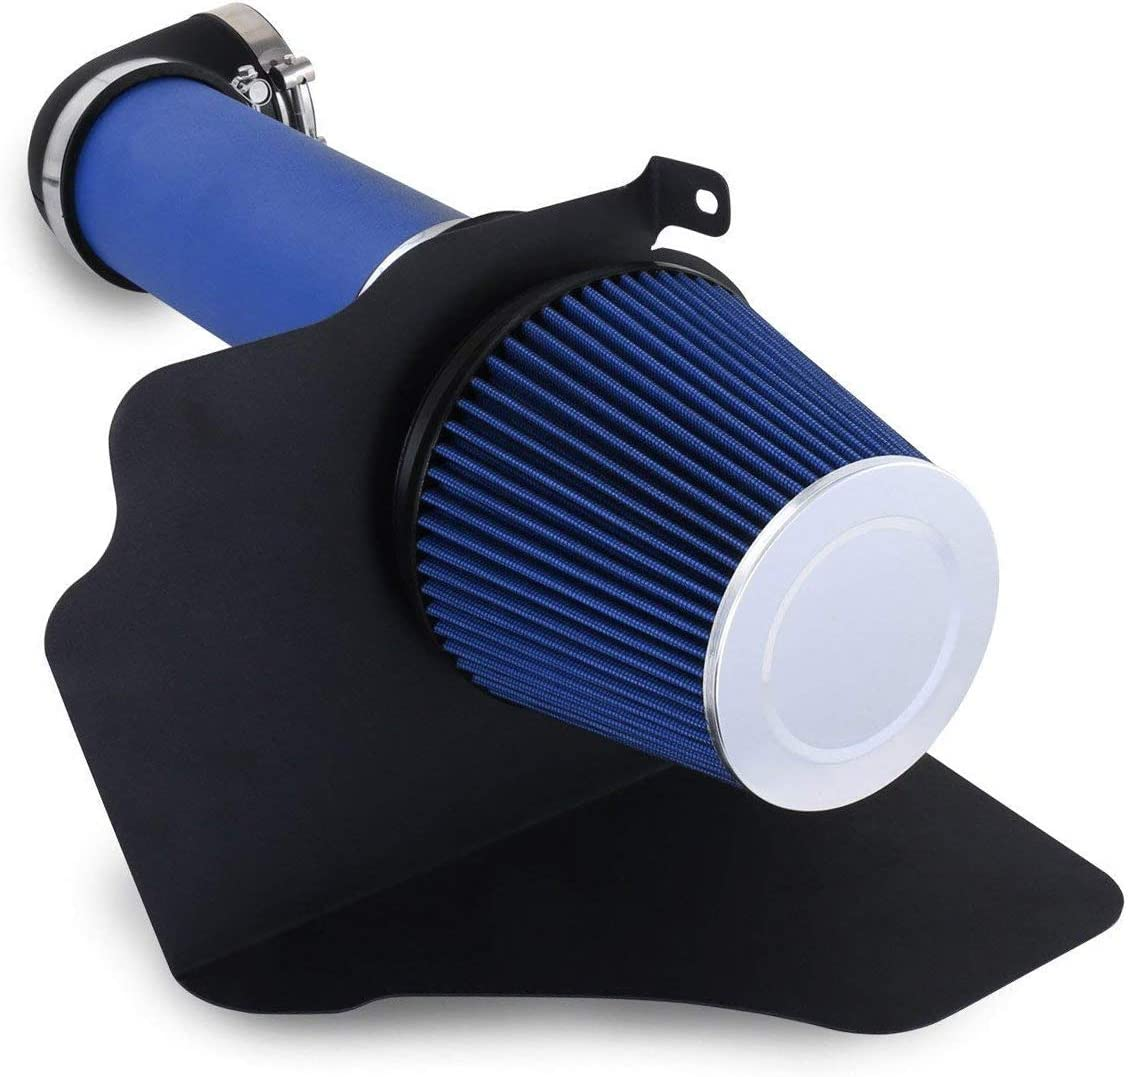 4 Inch Aluminum High Flow Air Intake Kit Blue Heat Shield Pipe with Filter For Challenger//300 C Sedan//Charger//Magnum R//T /& SRT-8 Hemi 5.7L 6.1L V8 Engine Only